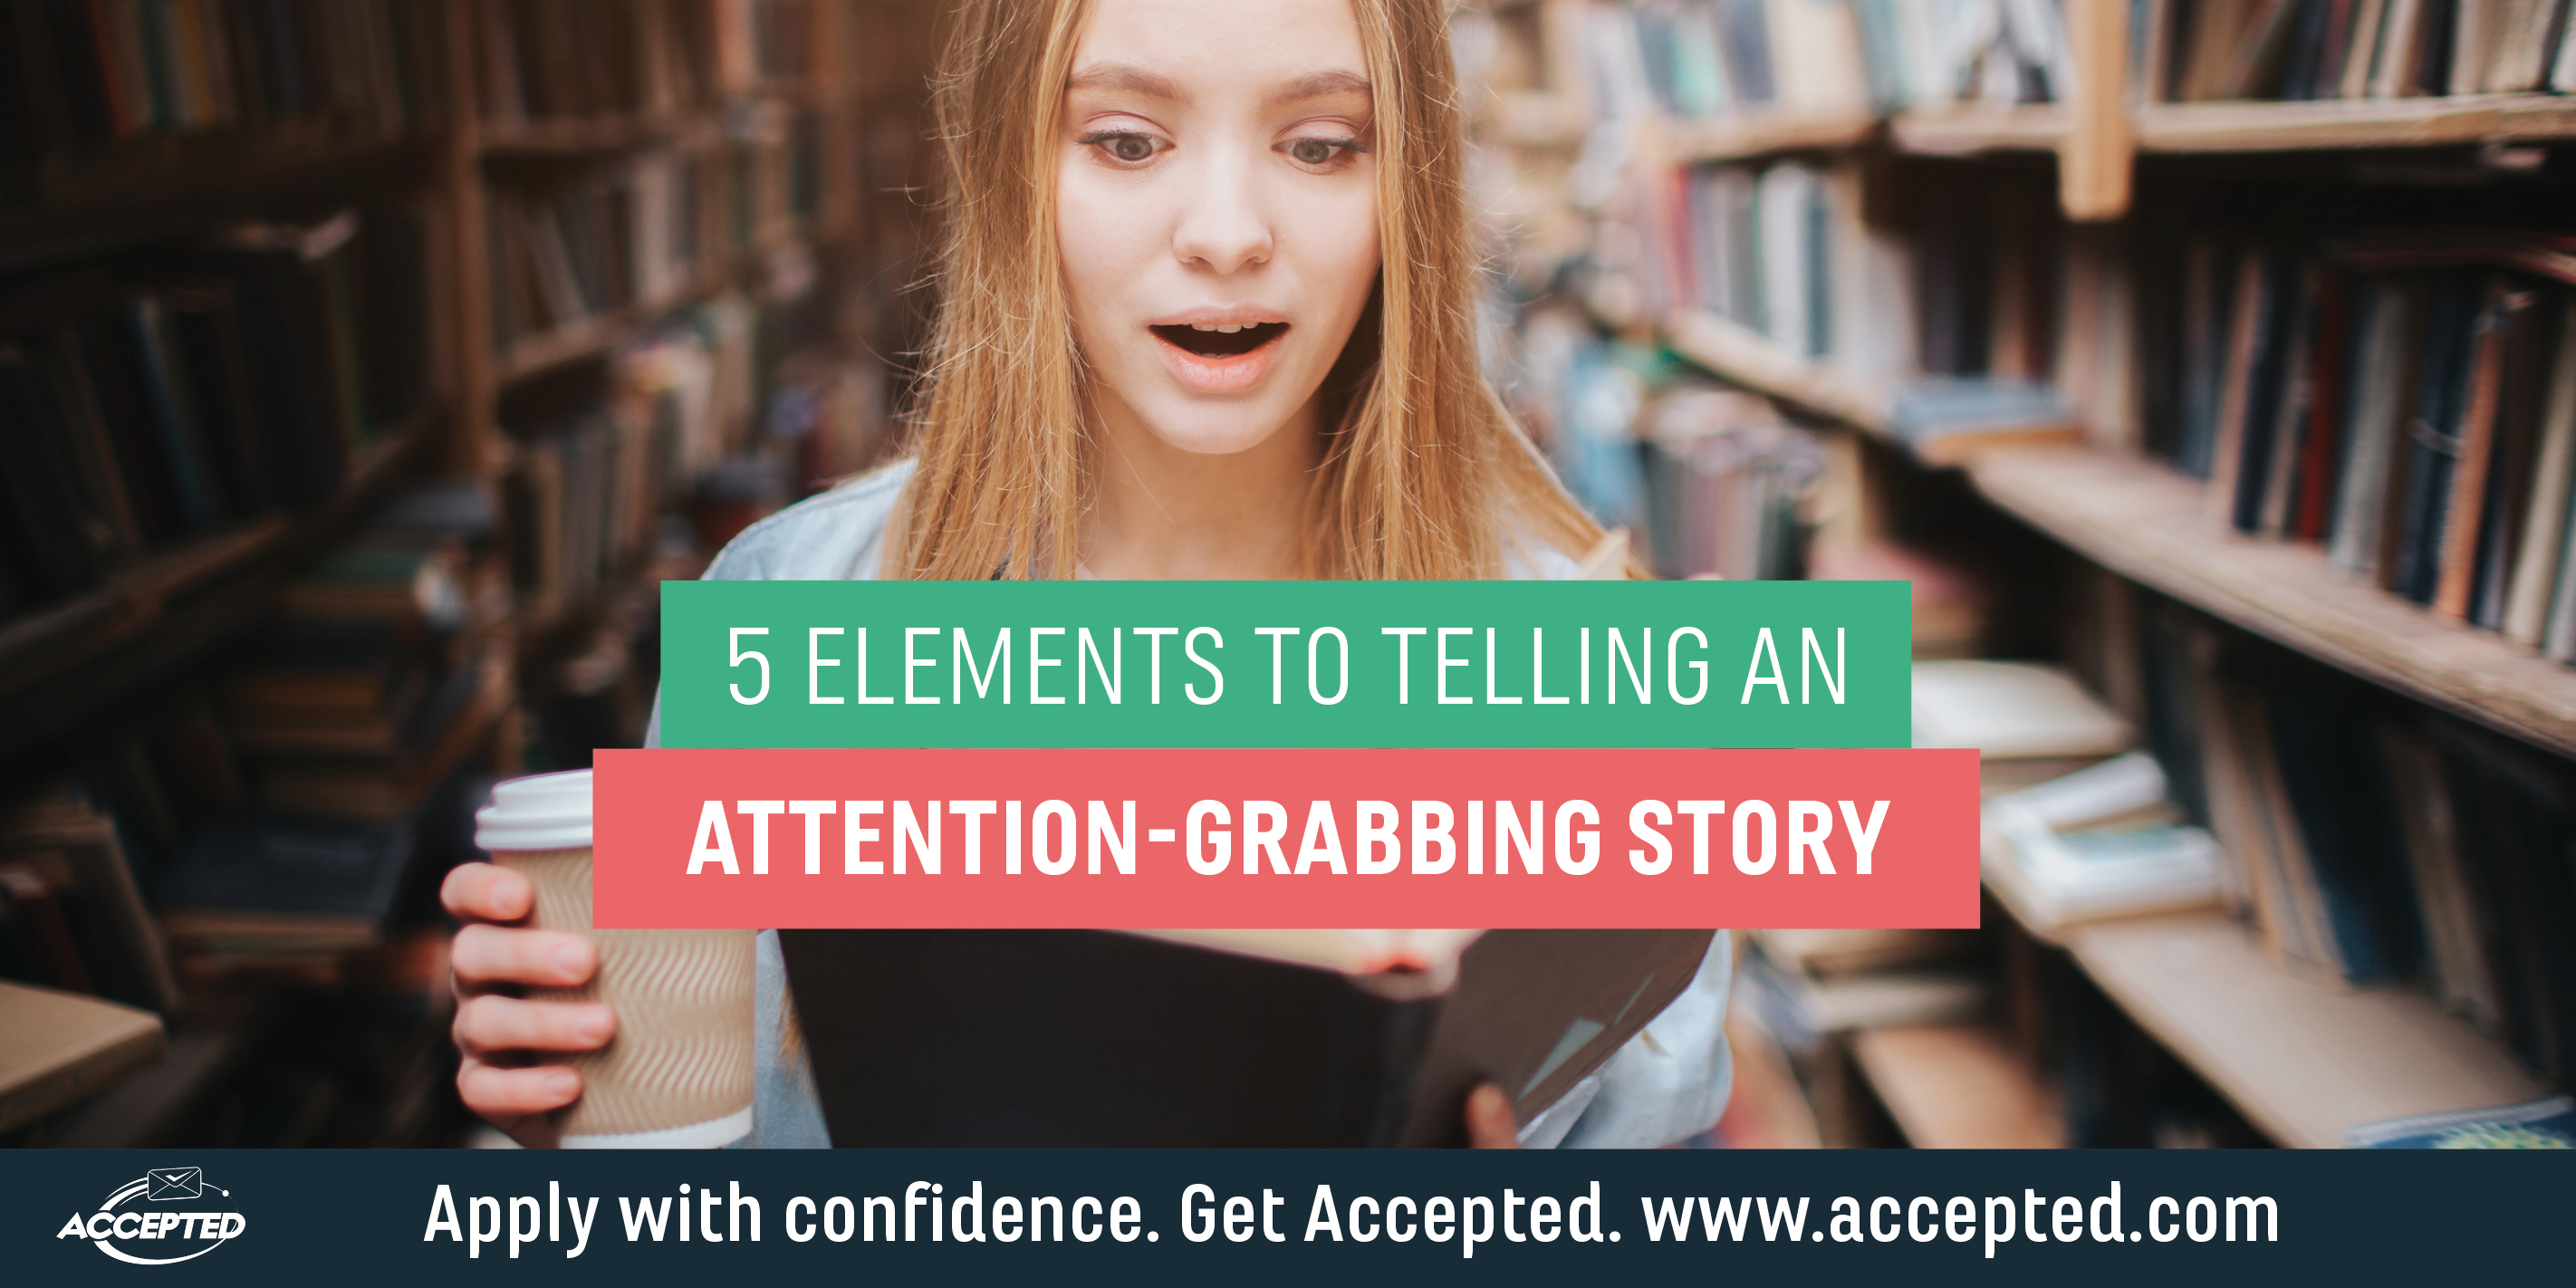 5 elements to telling an attention-grabbing story